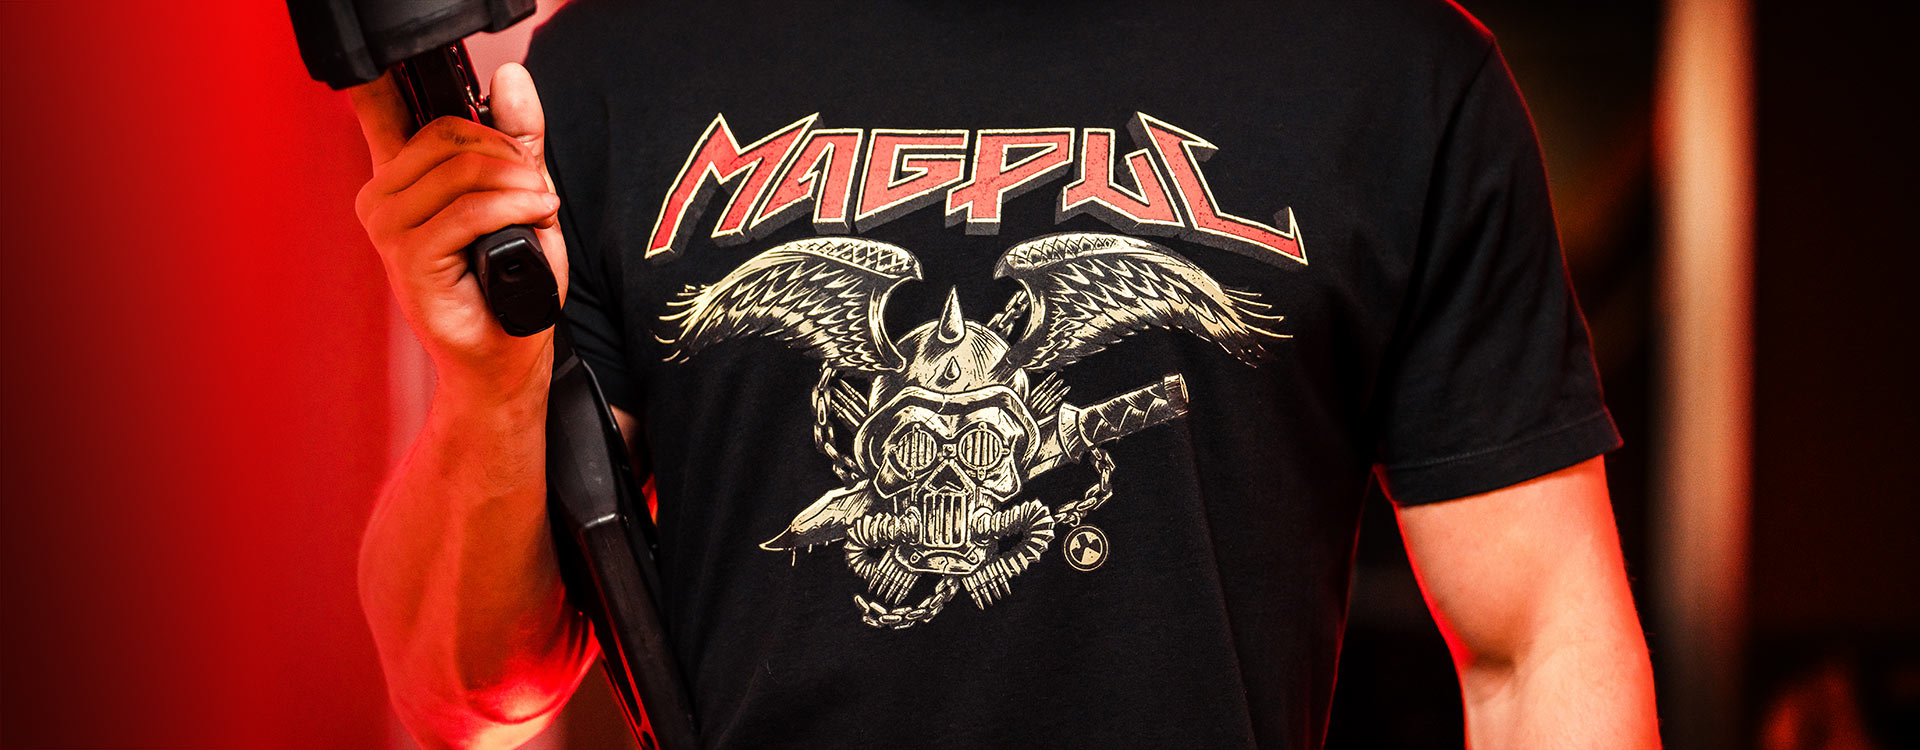 Magpul Heavy Metal Cotton T-Shirt with wicked graphic on man holding AR15 with D-60 Drum PMAG